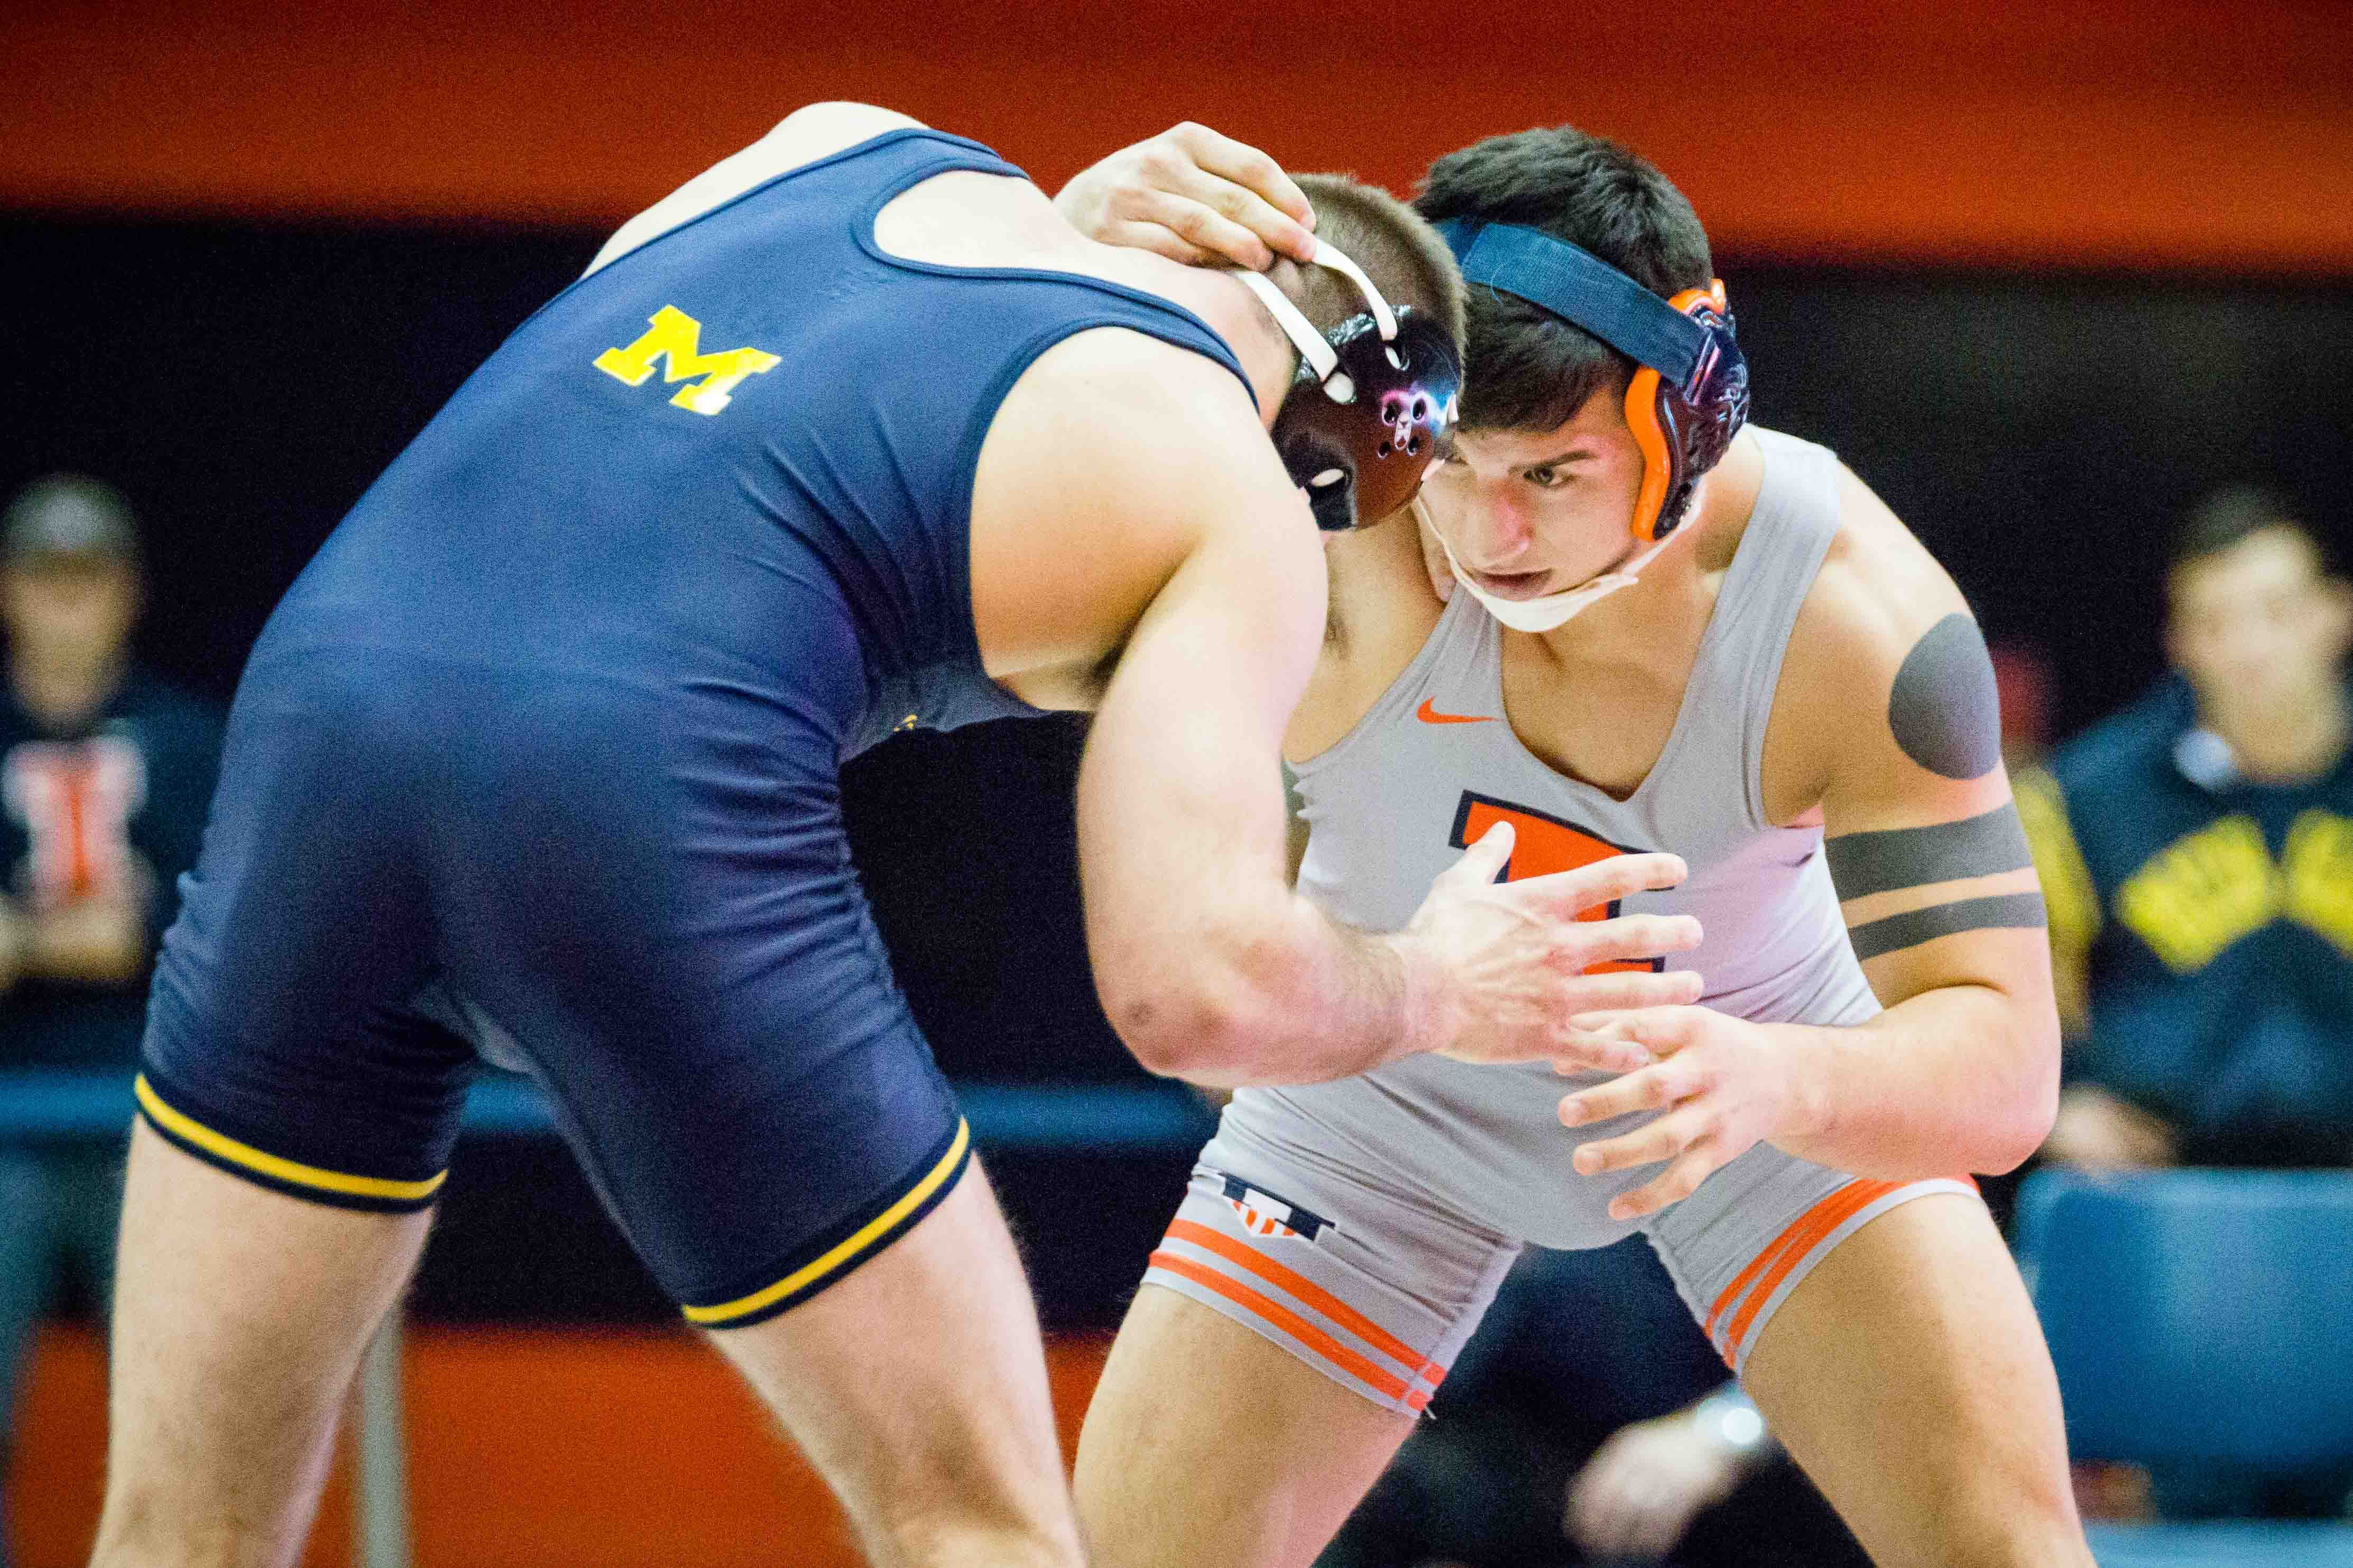 Illinois' Isaiah Martinez wrestles with Michigan's Logan Massa in the 165 pound weight class during the match at Huff Hall on Friday, January 20. Martinez won by decision and the Illini defeated the Wolverines 34-6.